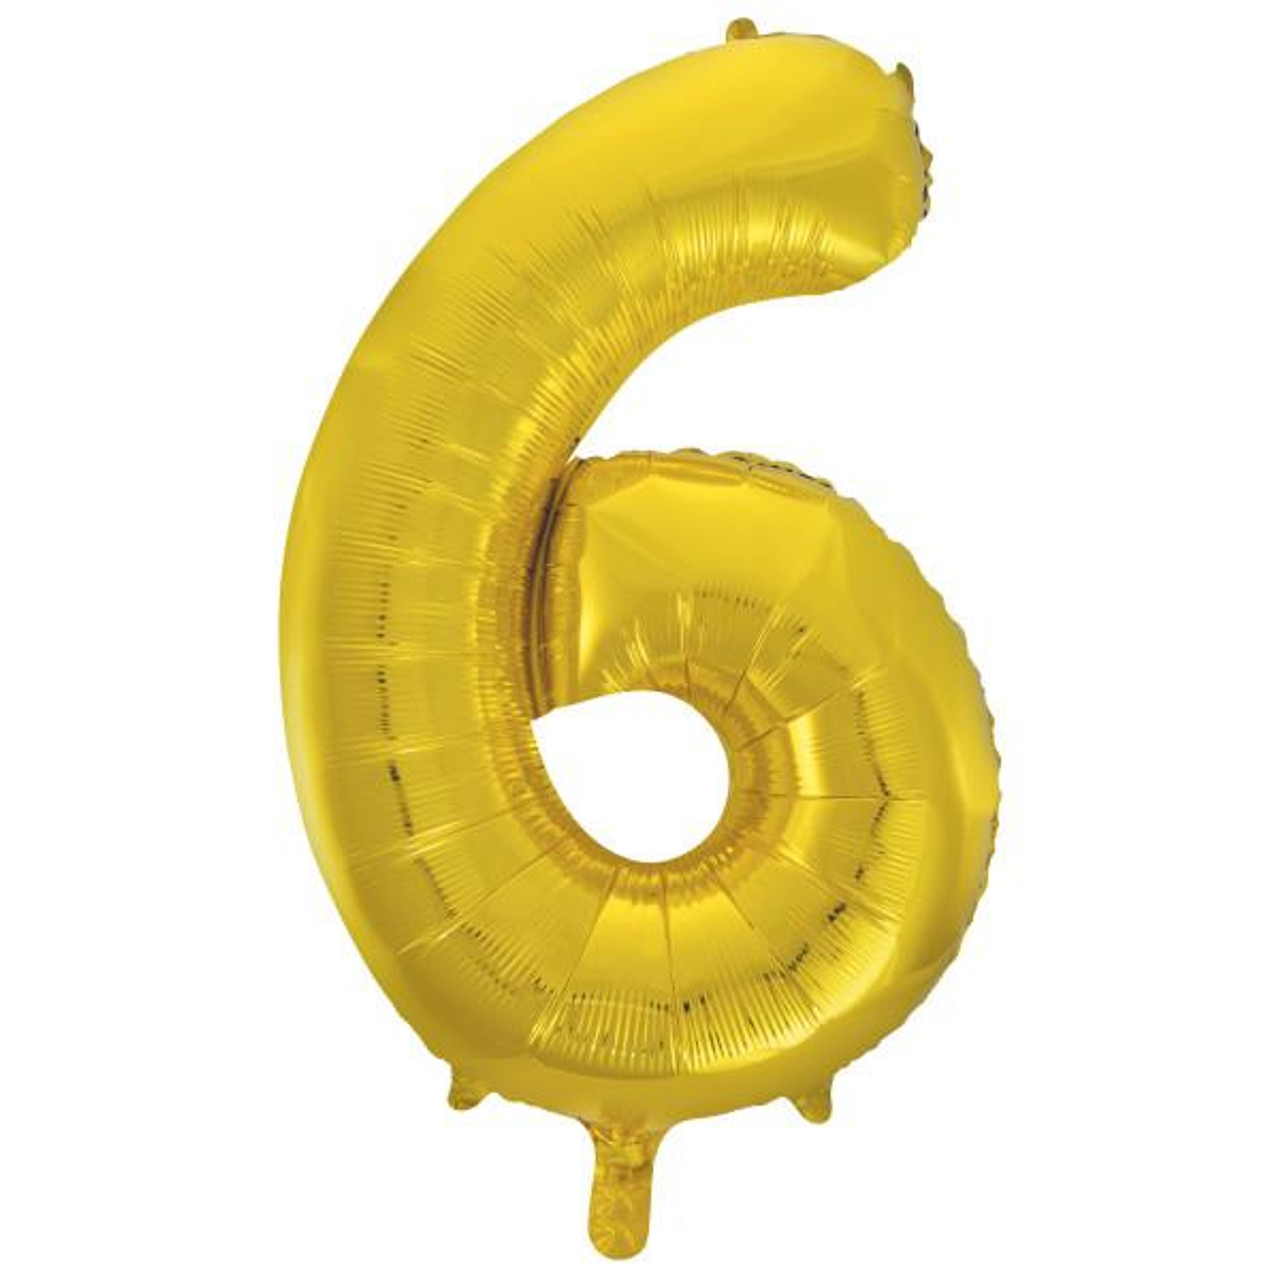 NUMBER 6 GOLD 34 INCHES